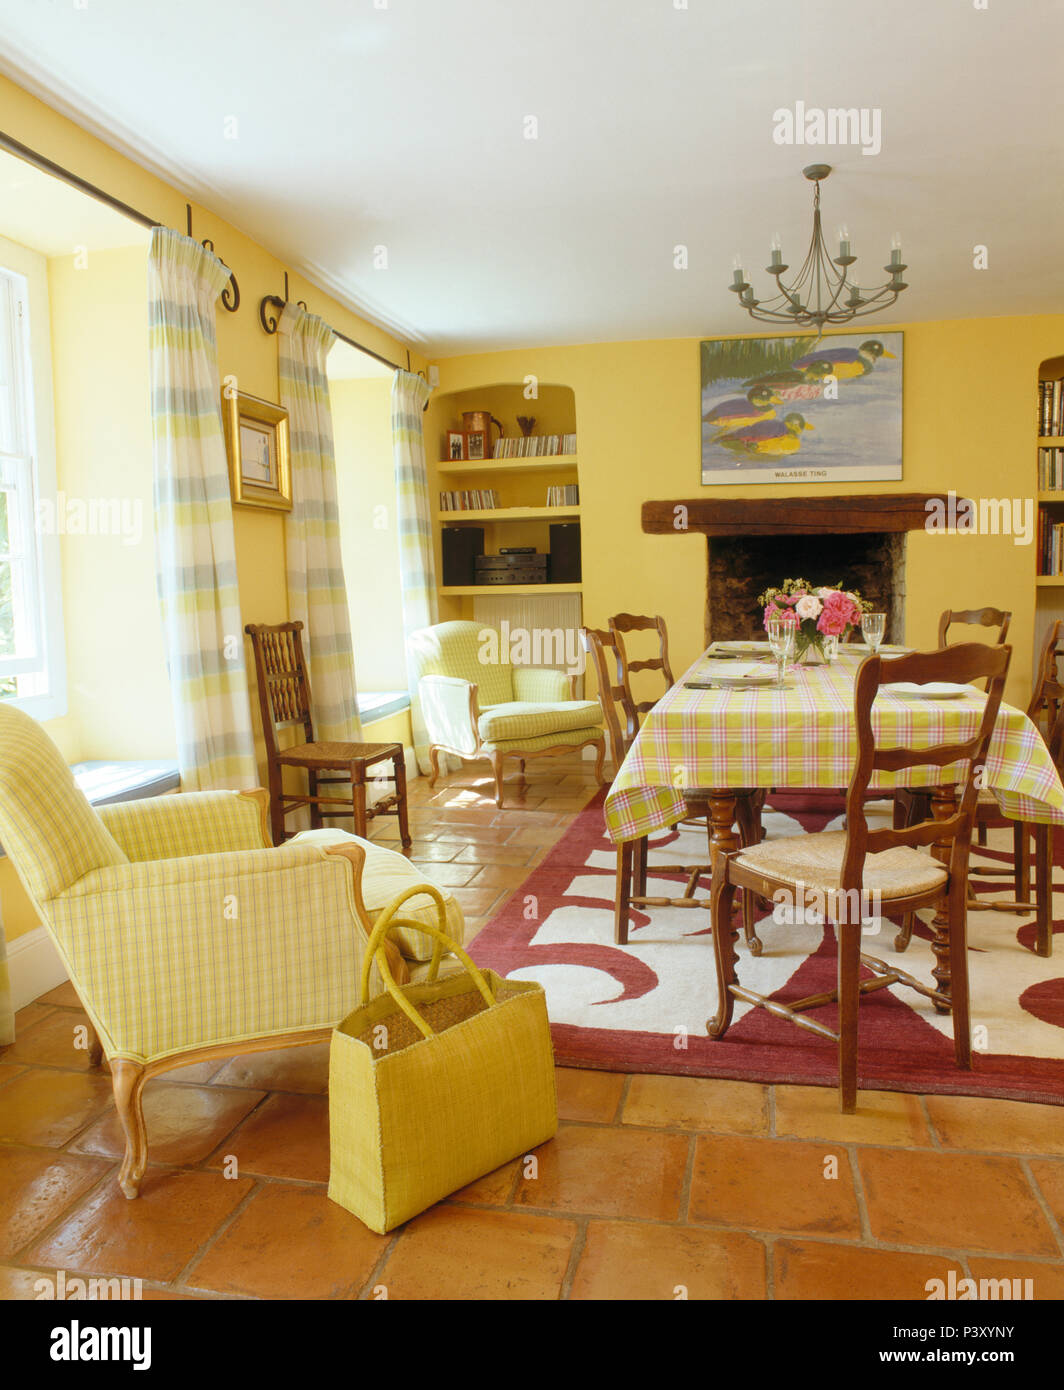 Yellow Checked Armchair And Basket In Country Dining Room With Red White Patterned Rug